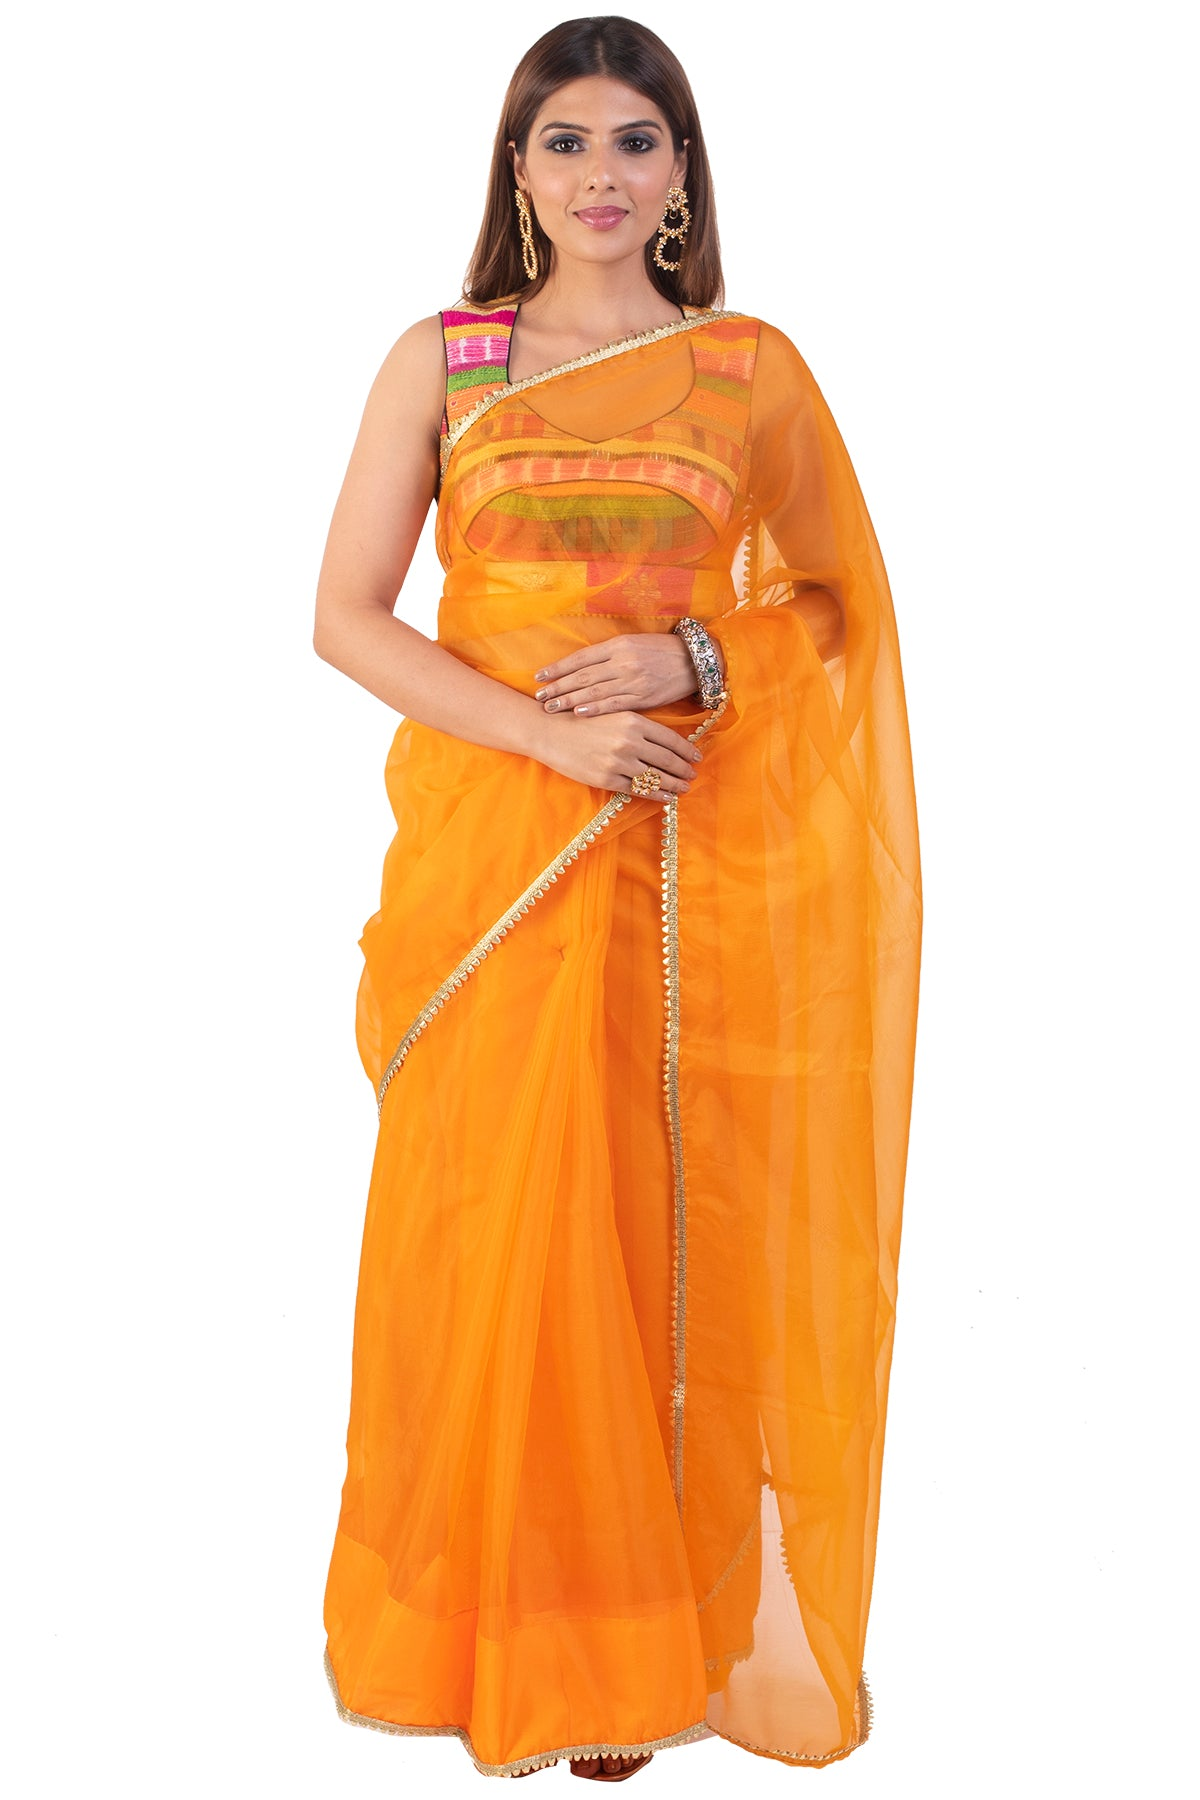 There is nothing more engaging than colors, the sleeveless blouse that is an amalgamation of a range of colors paired with a plain orange saree is the elephant in the room!